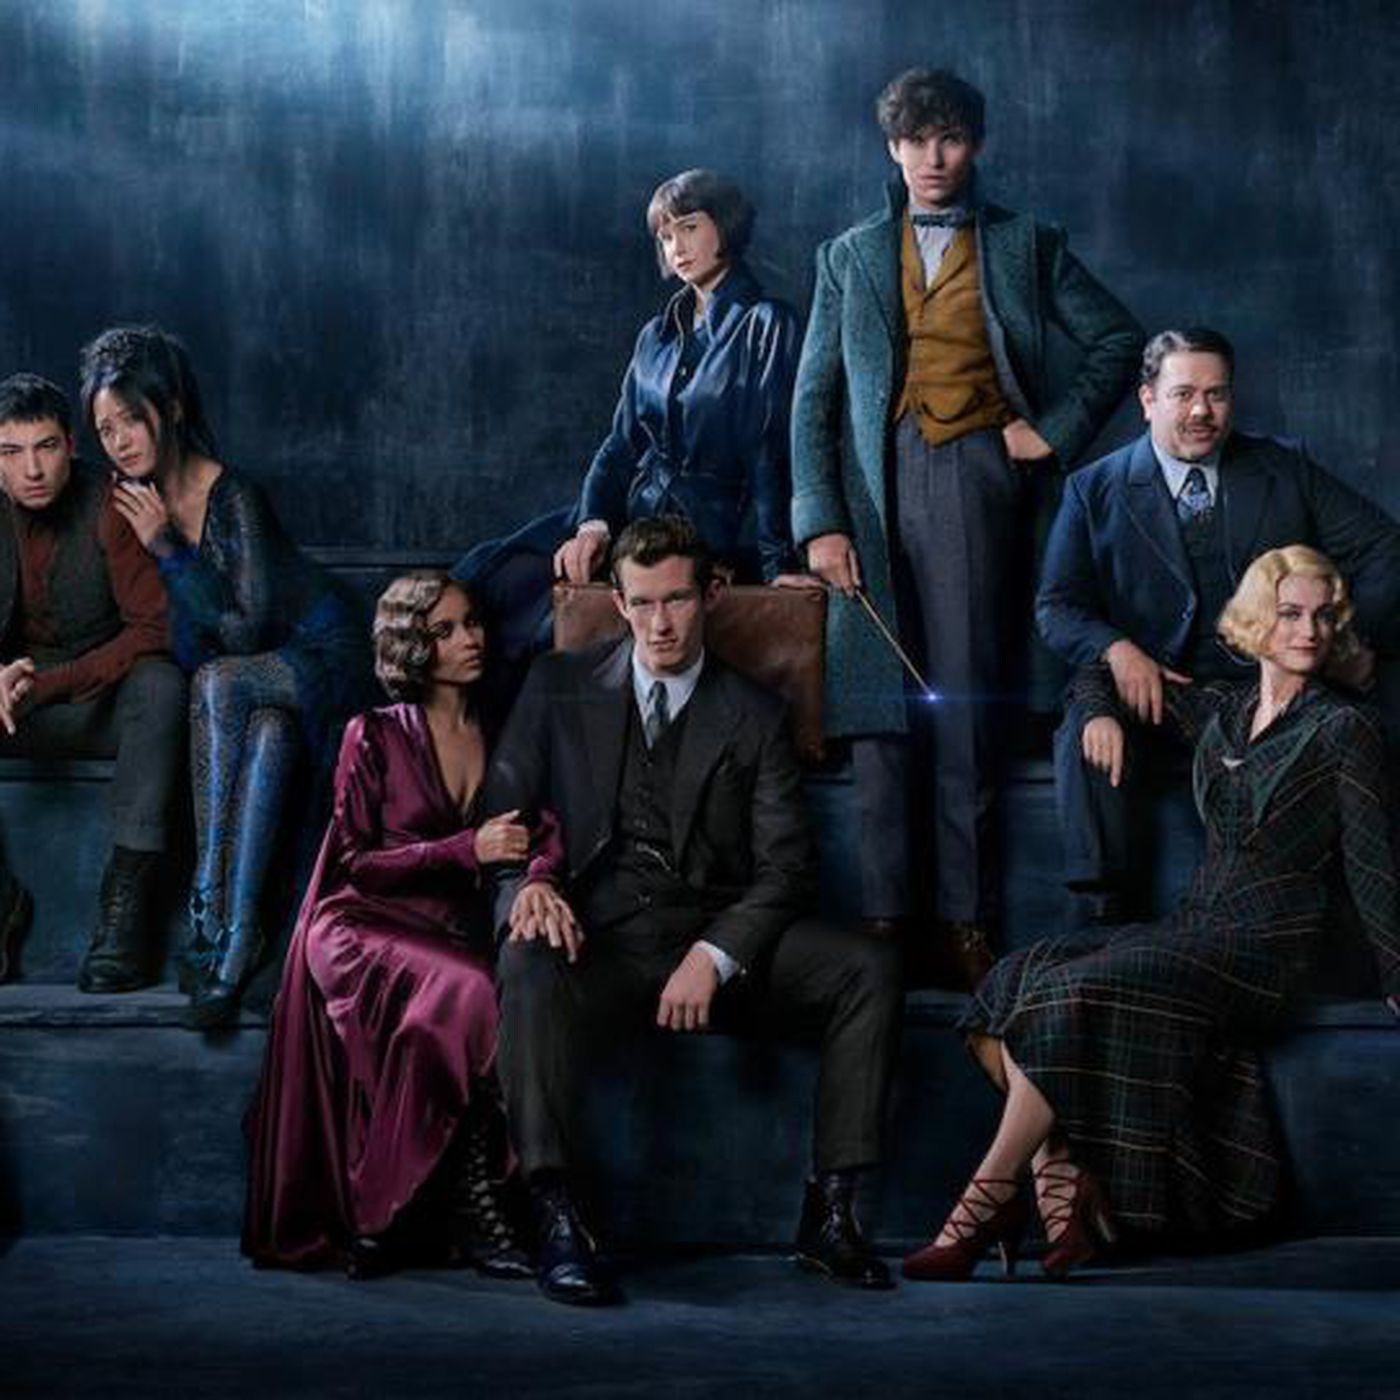 The title of the next Fantastic Beasts film teases an important part